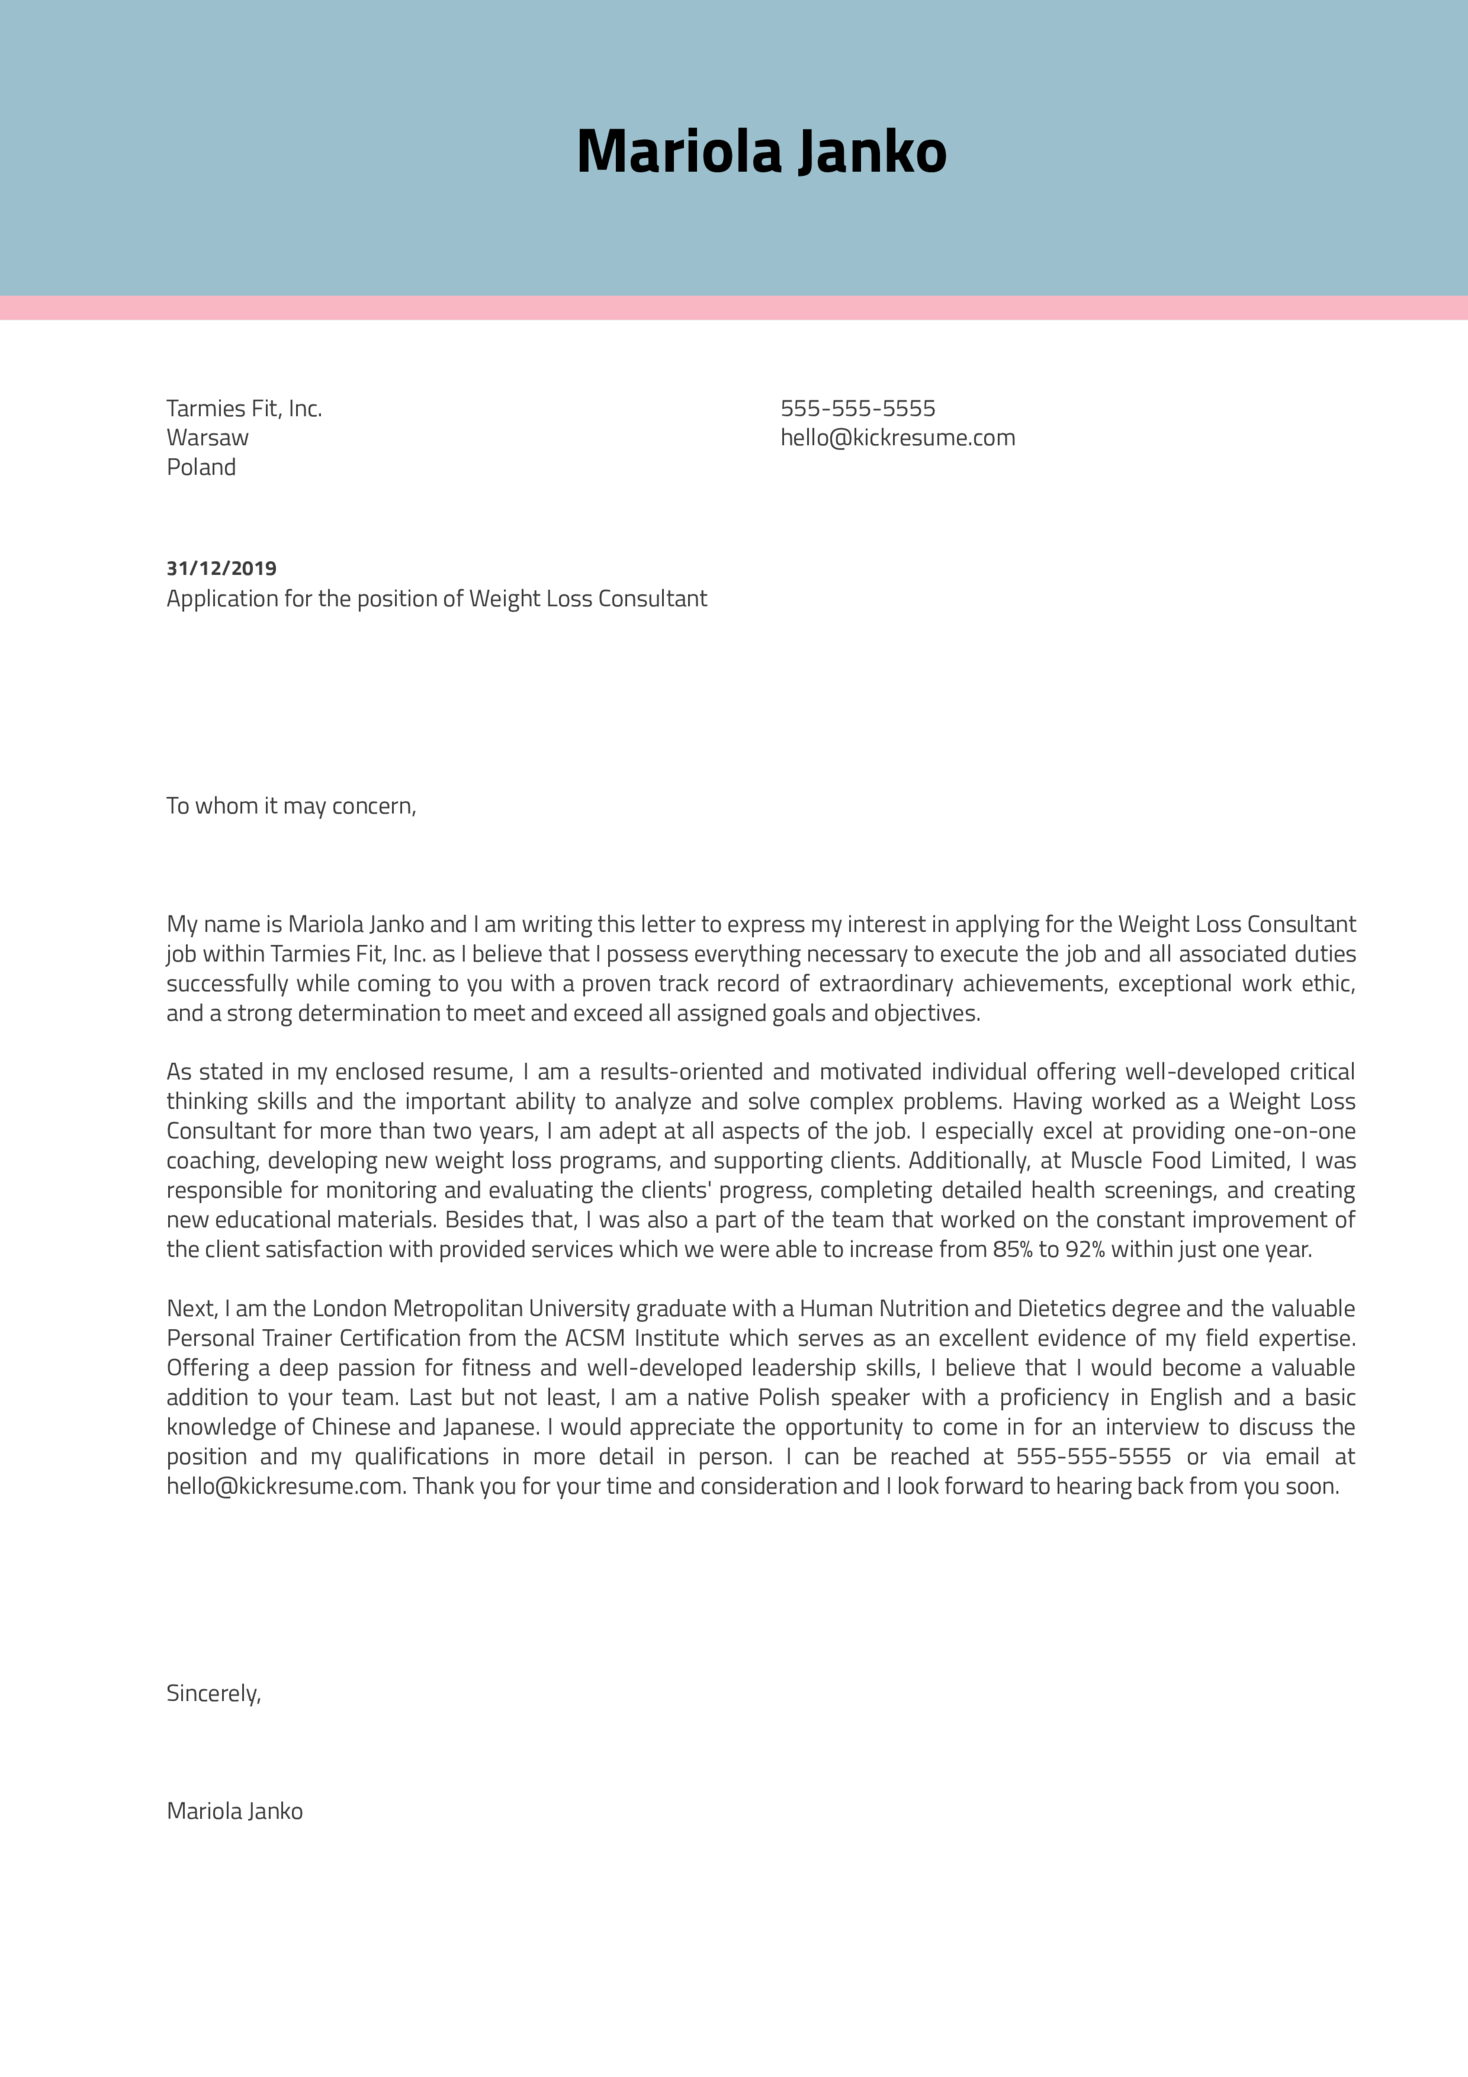 Weight Loss Consultant Cover Letter Example